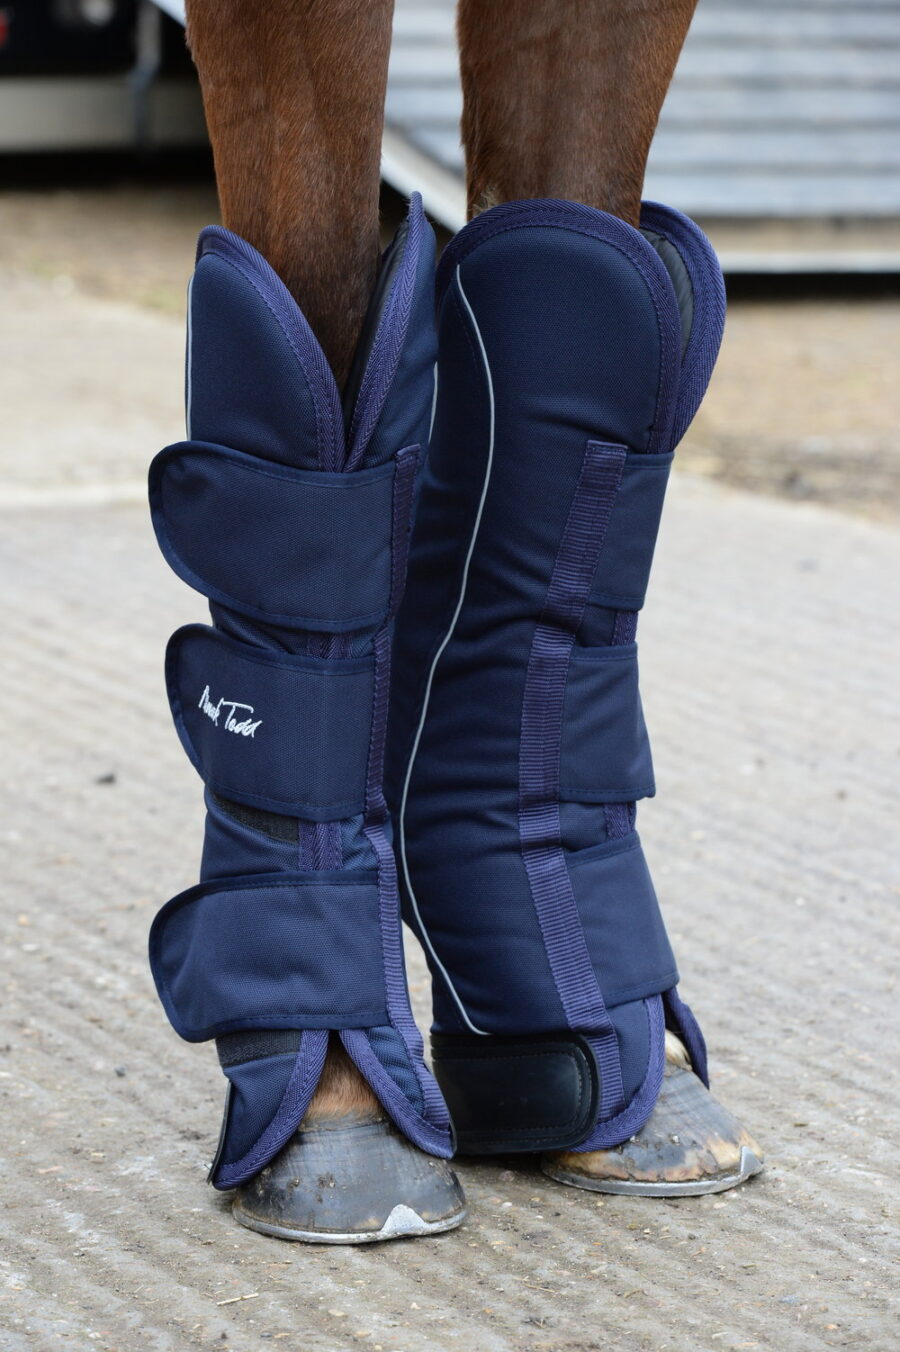 A Review of the Mark Todd Travel Boots